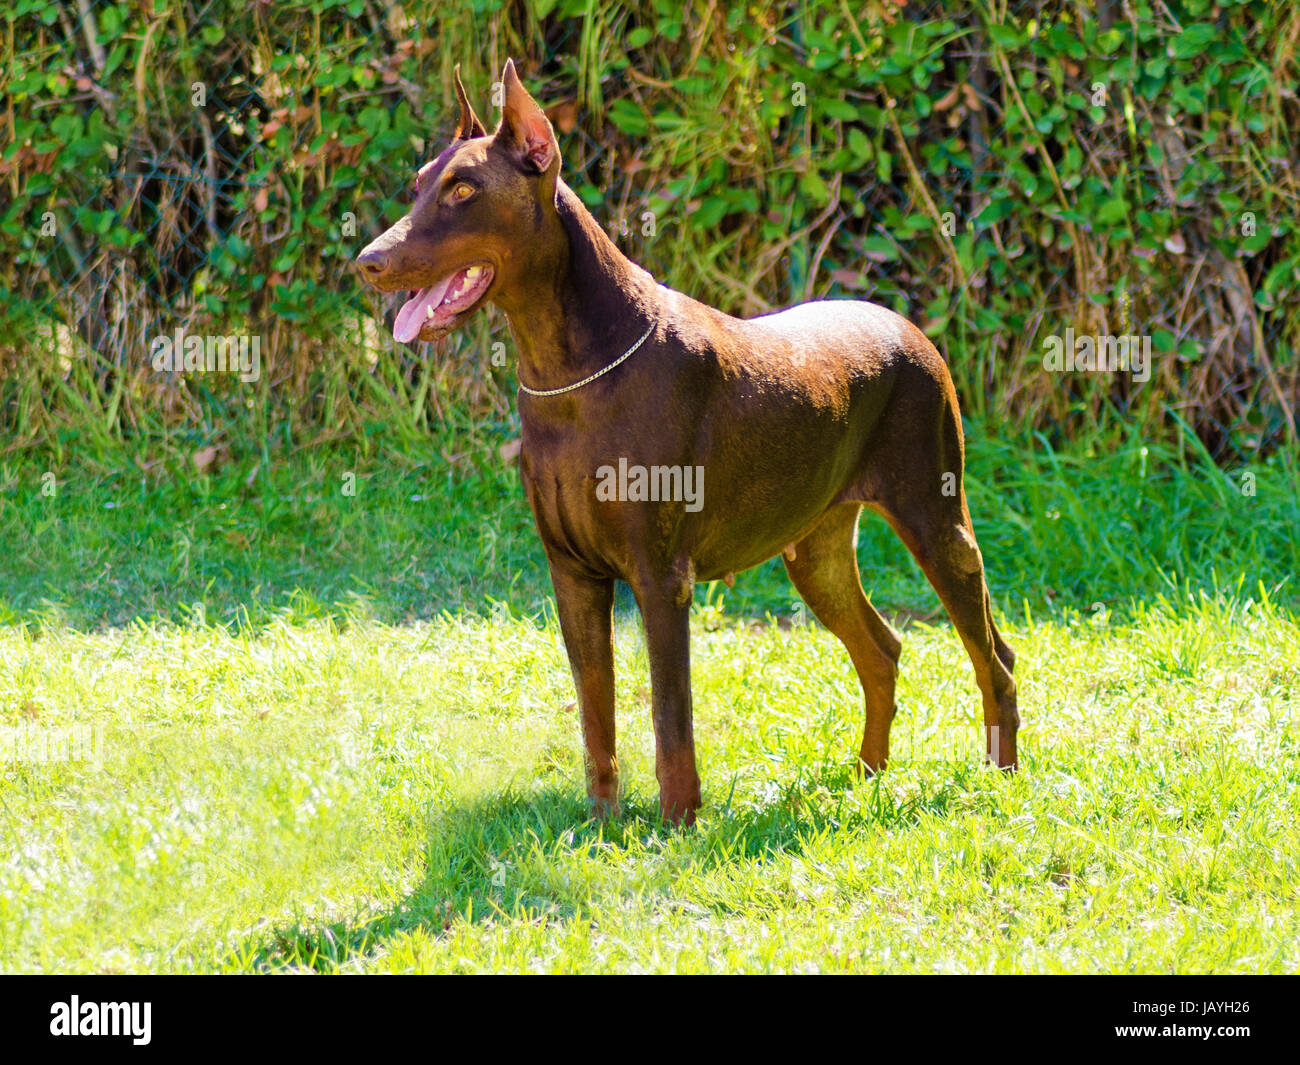 A young, beautiful, brown Doberman Pinscher standing on the lawn while sticking its tongue out and looking happy - Stock Image